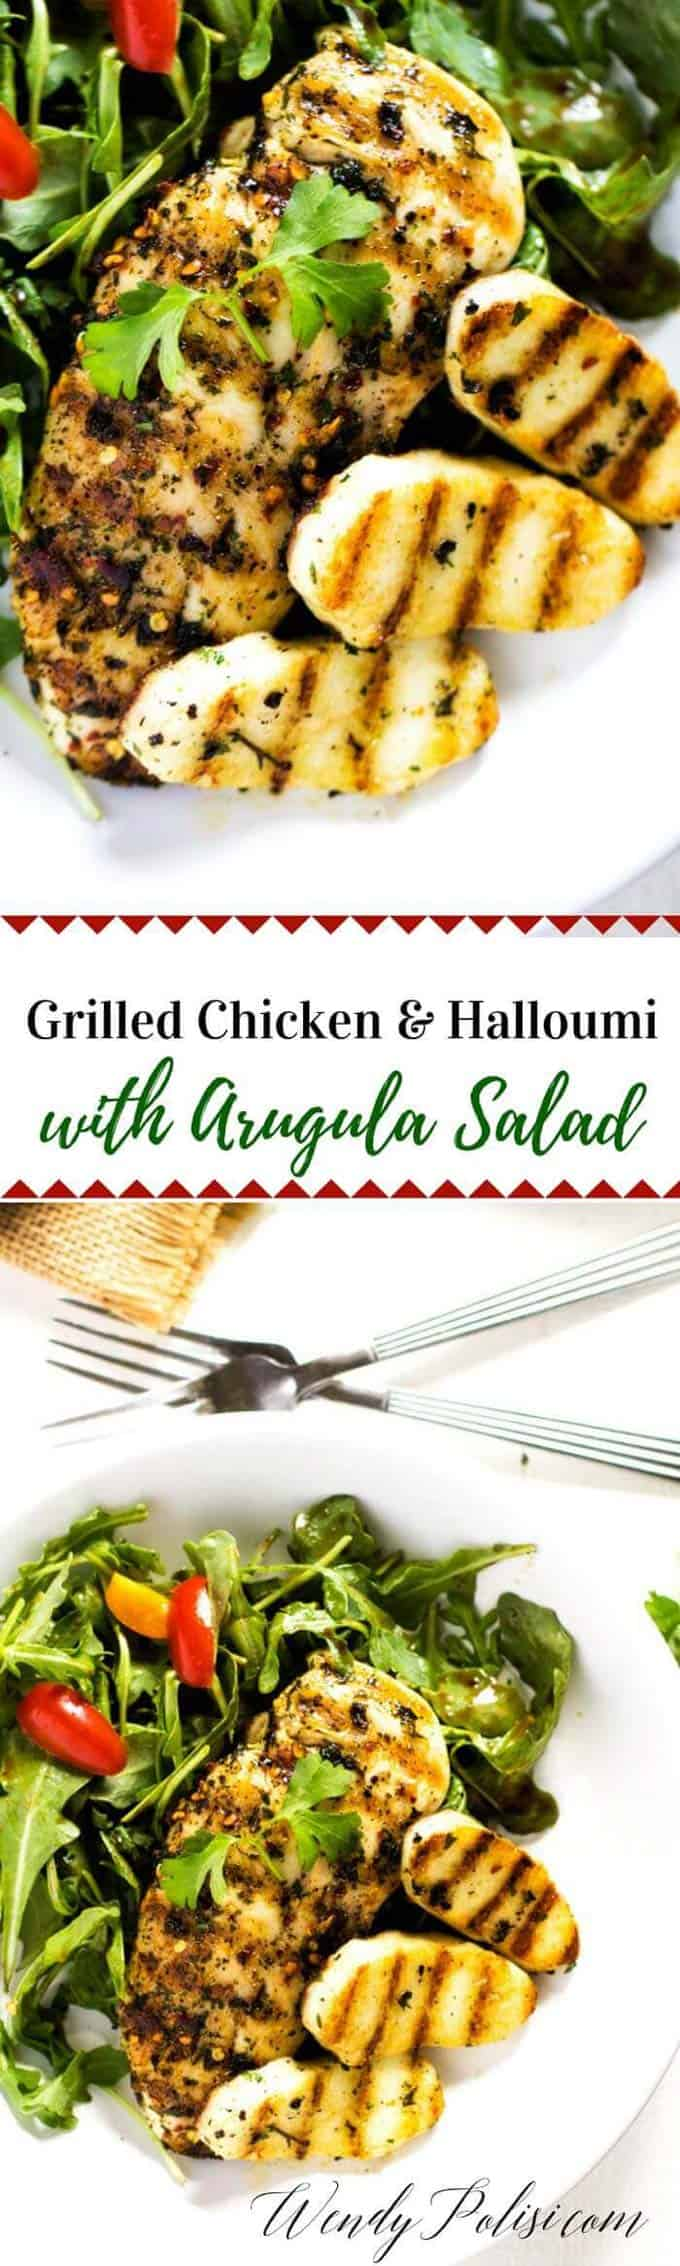 This Grilled Chicken & Halloumi with Arugula Salad is an easy and delicious way to fire up your grill. It's gluten-free, low-carb and keto friendly.